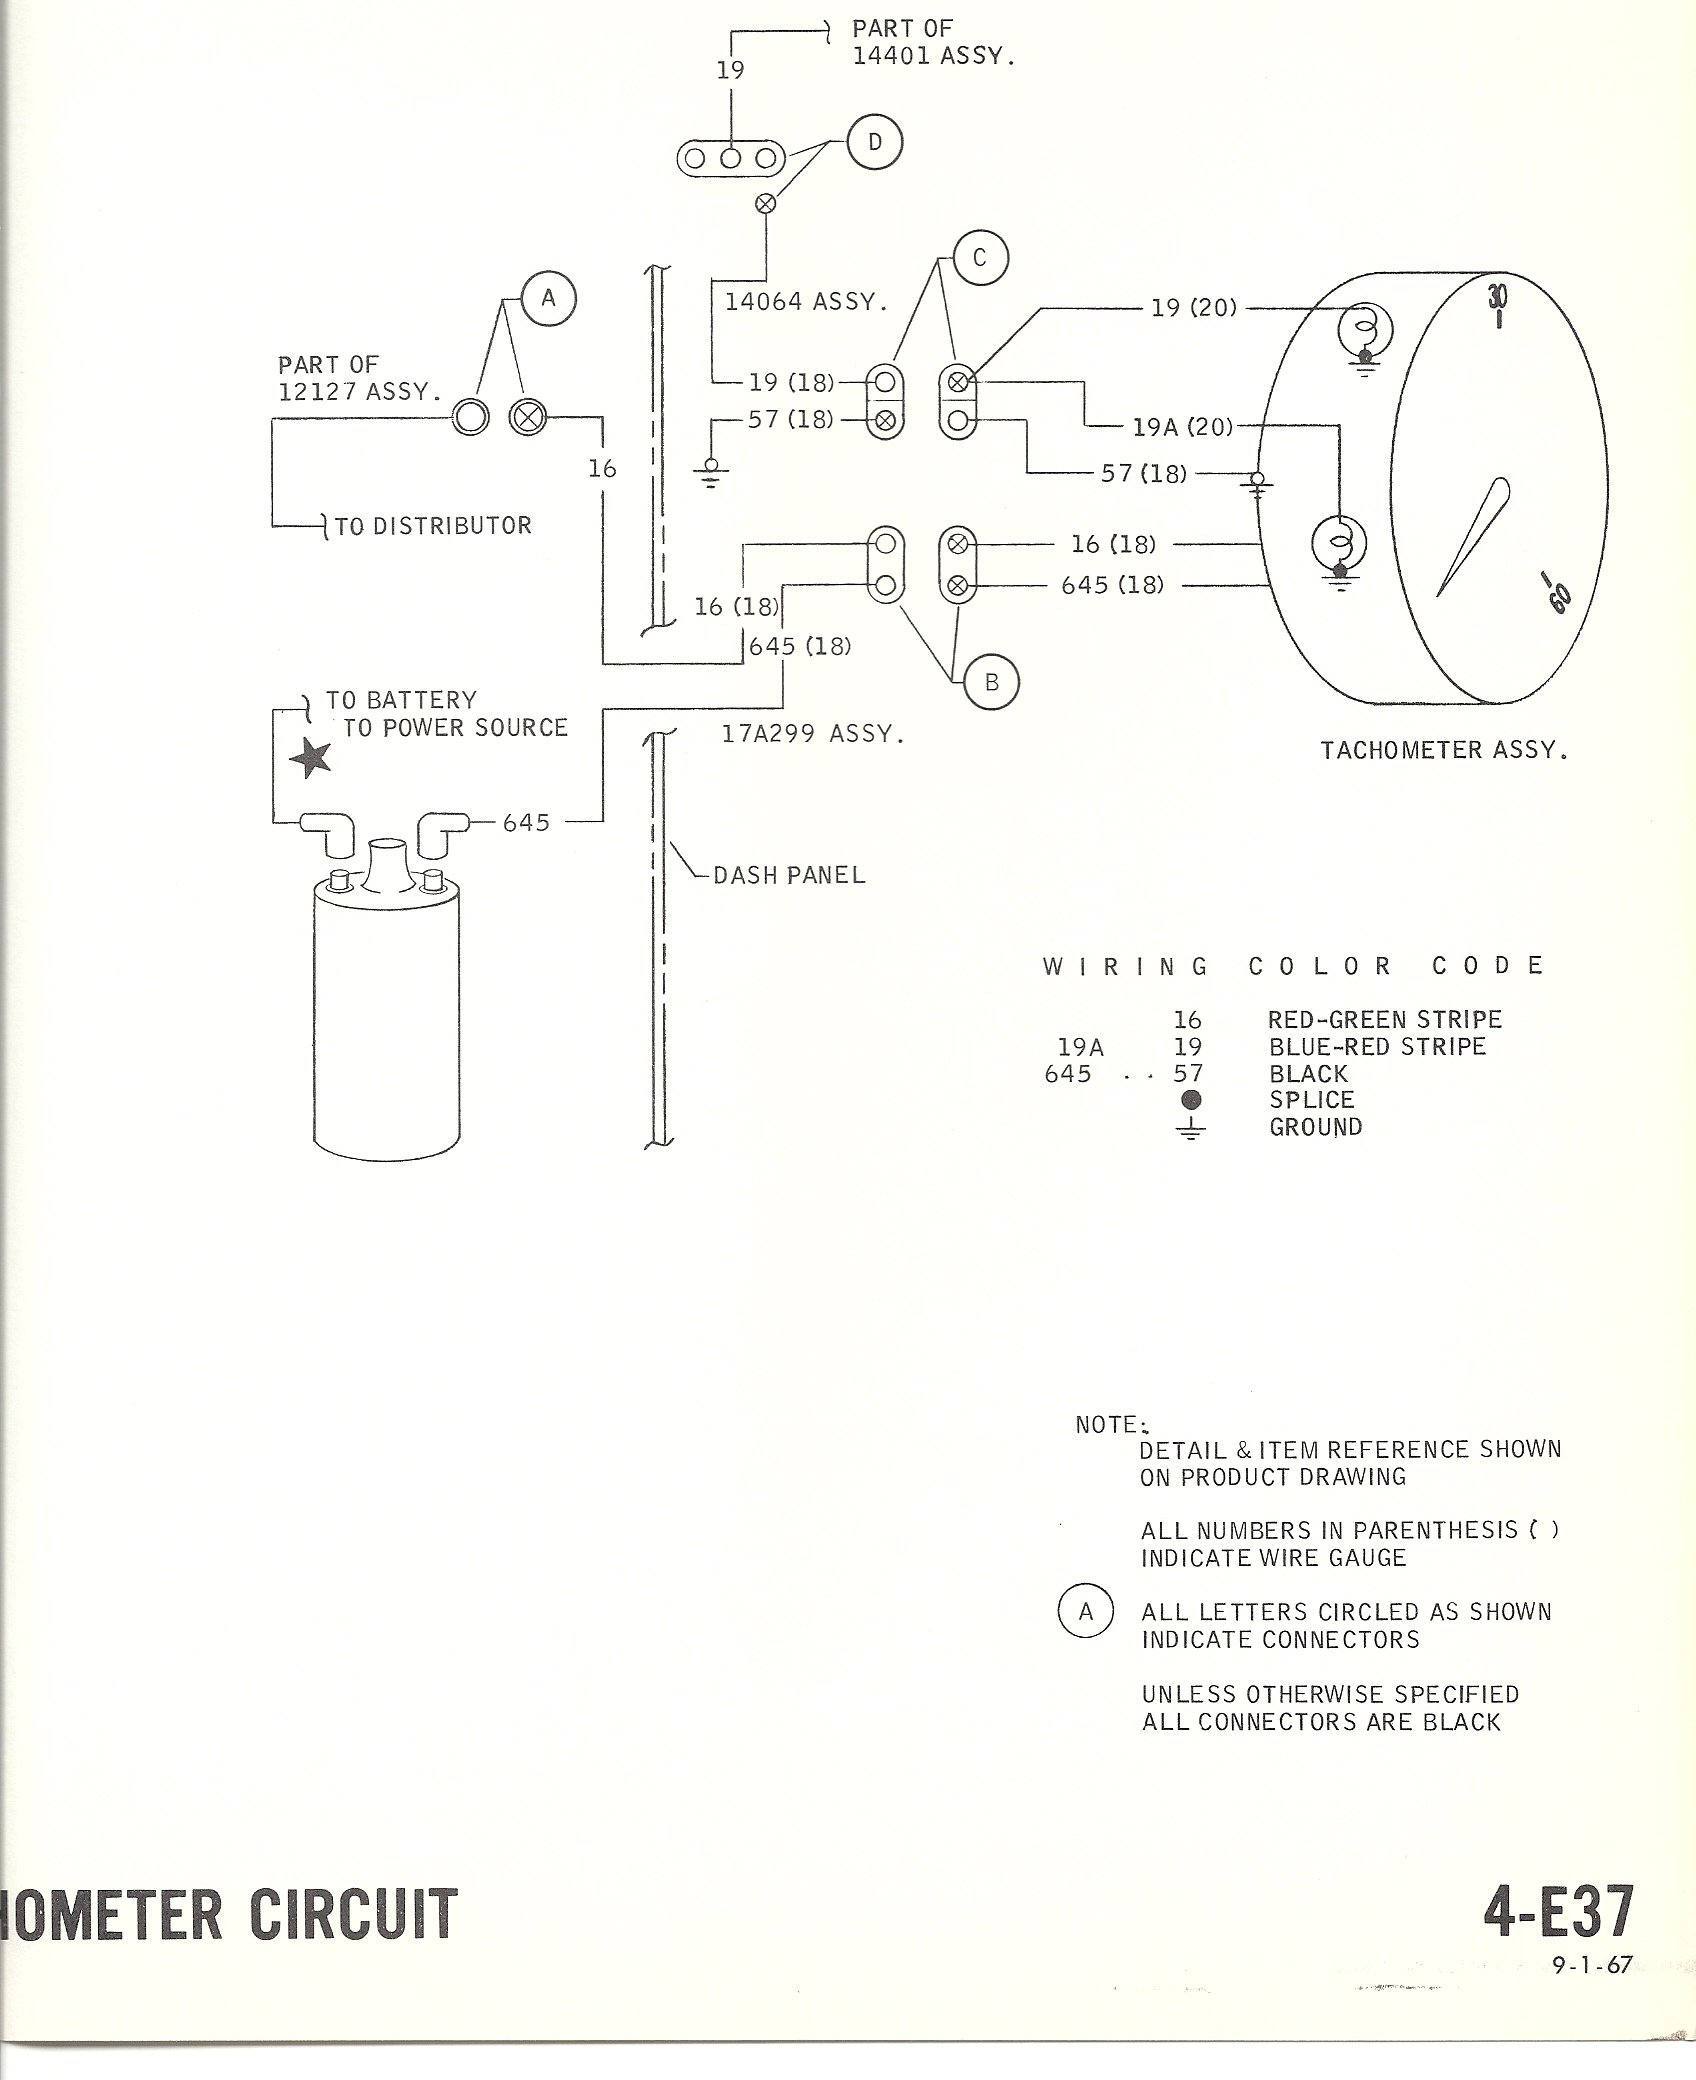 89255d1264897998 1968 mustang wiring diagrams tach please help tach wiring diagram 1968 mustang wiring diagrams with tach, please help ford mustang mustang ii wiring diagram at eliteediting.co